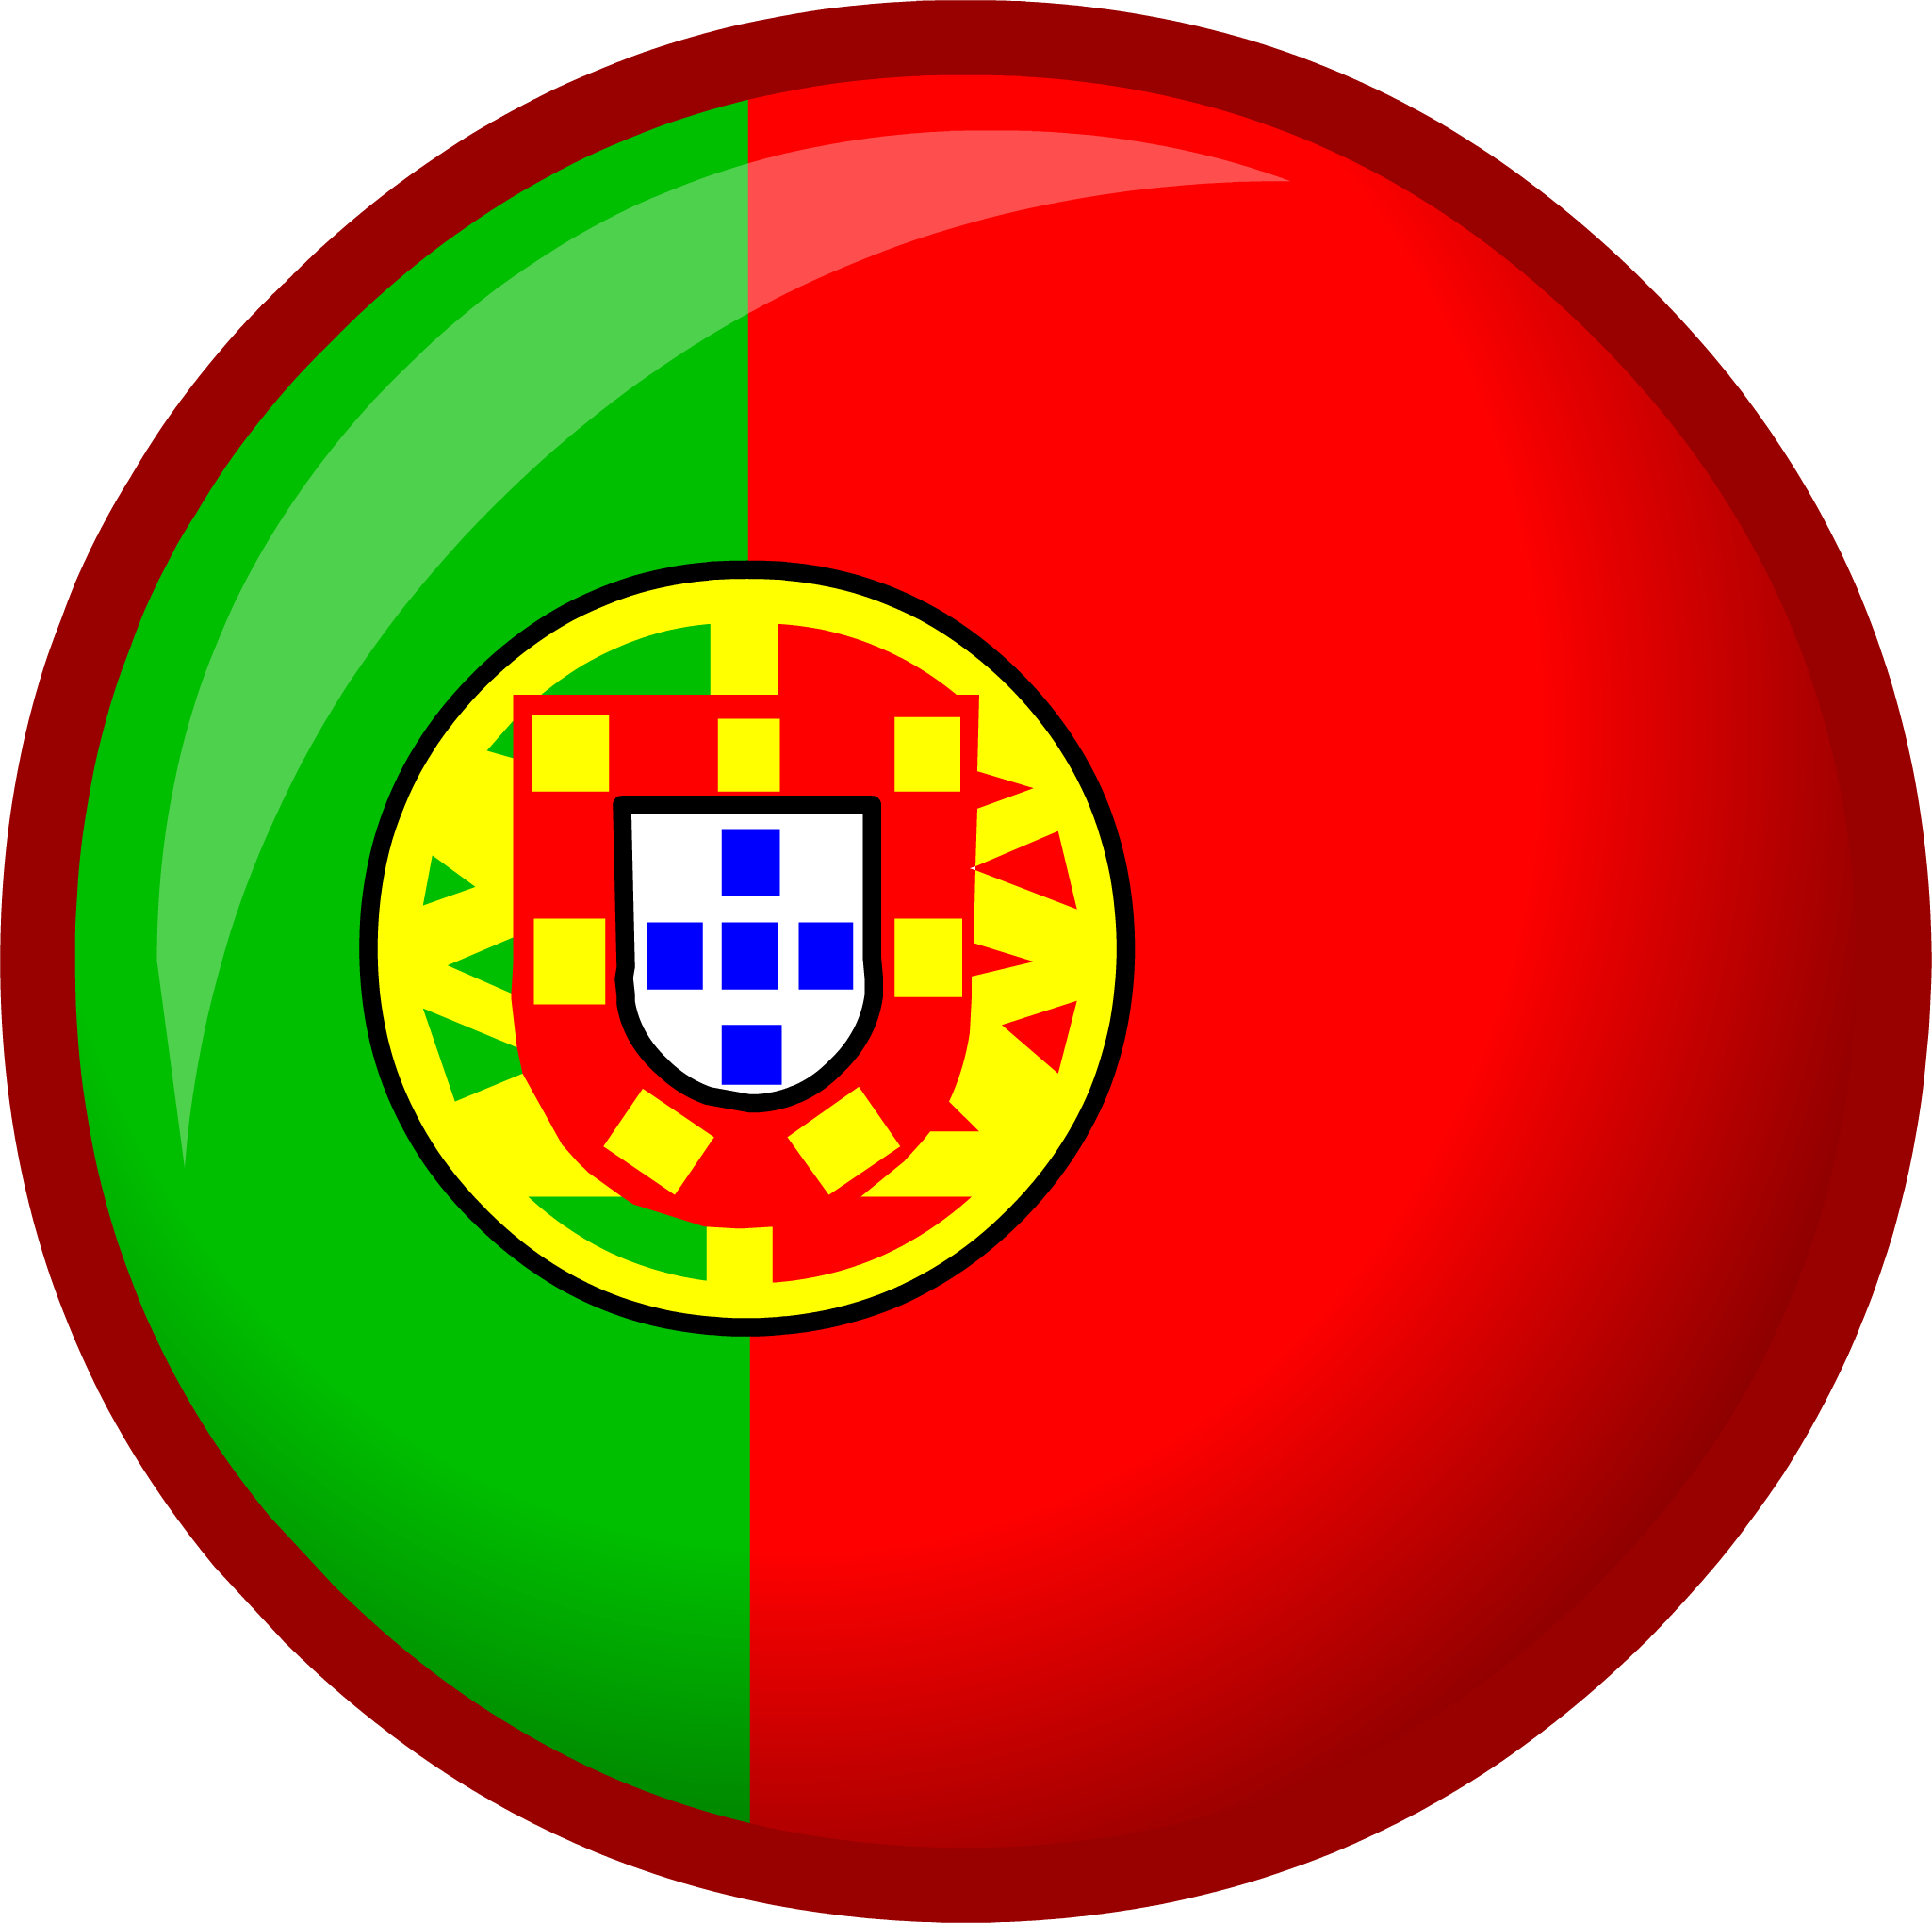 Flag Of Portugal Backgrounds on Wallpapers Vista